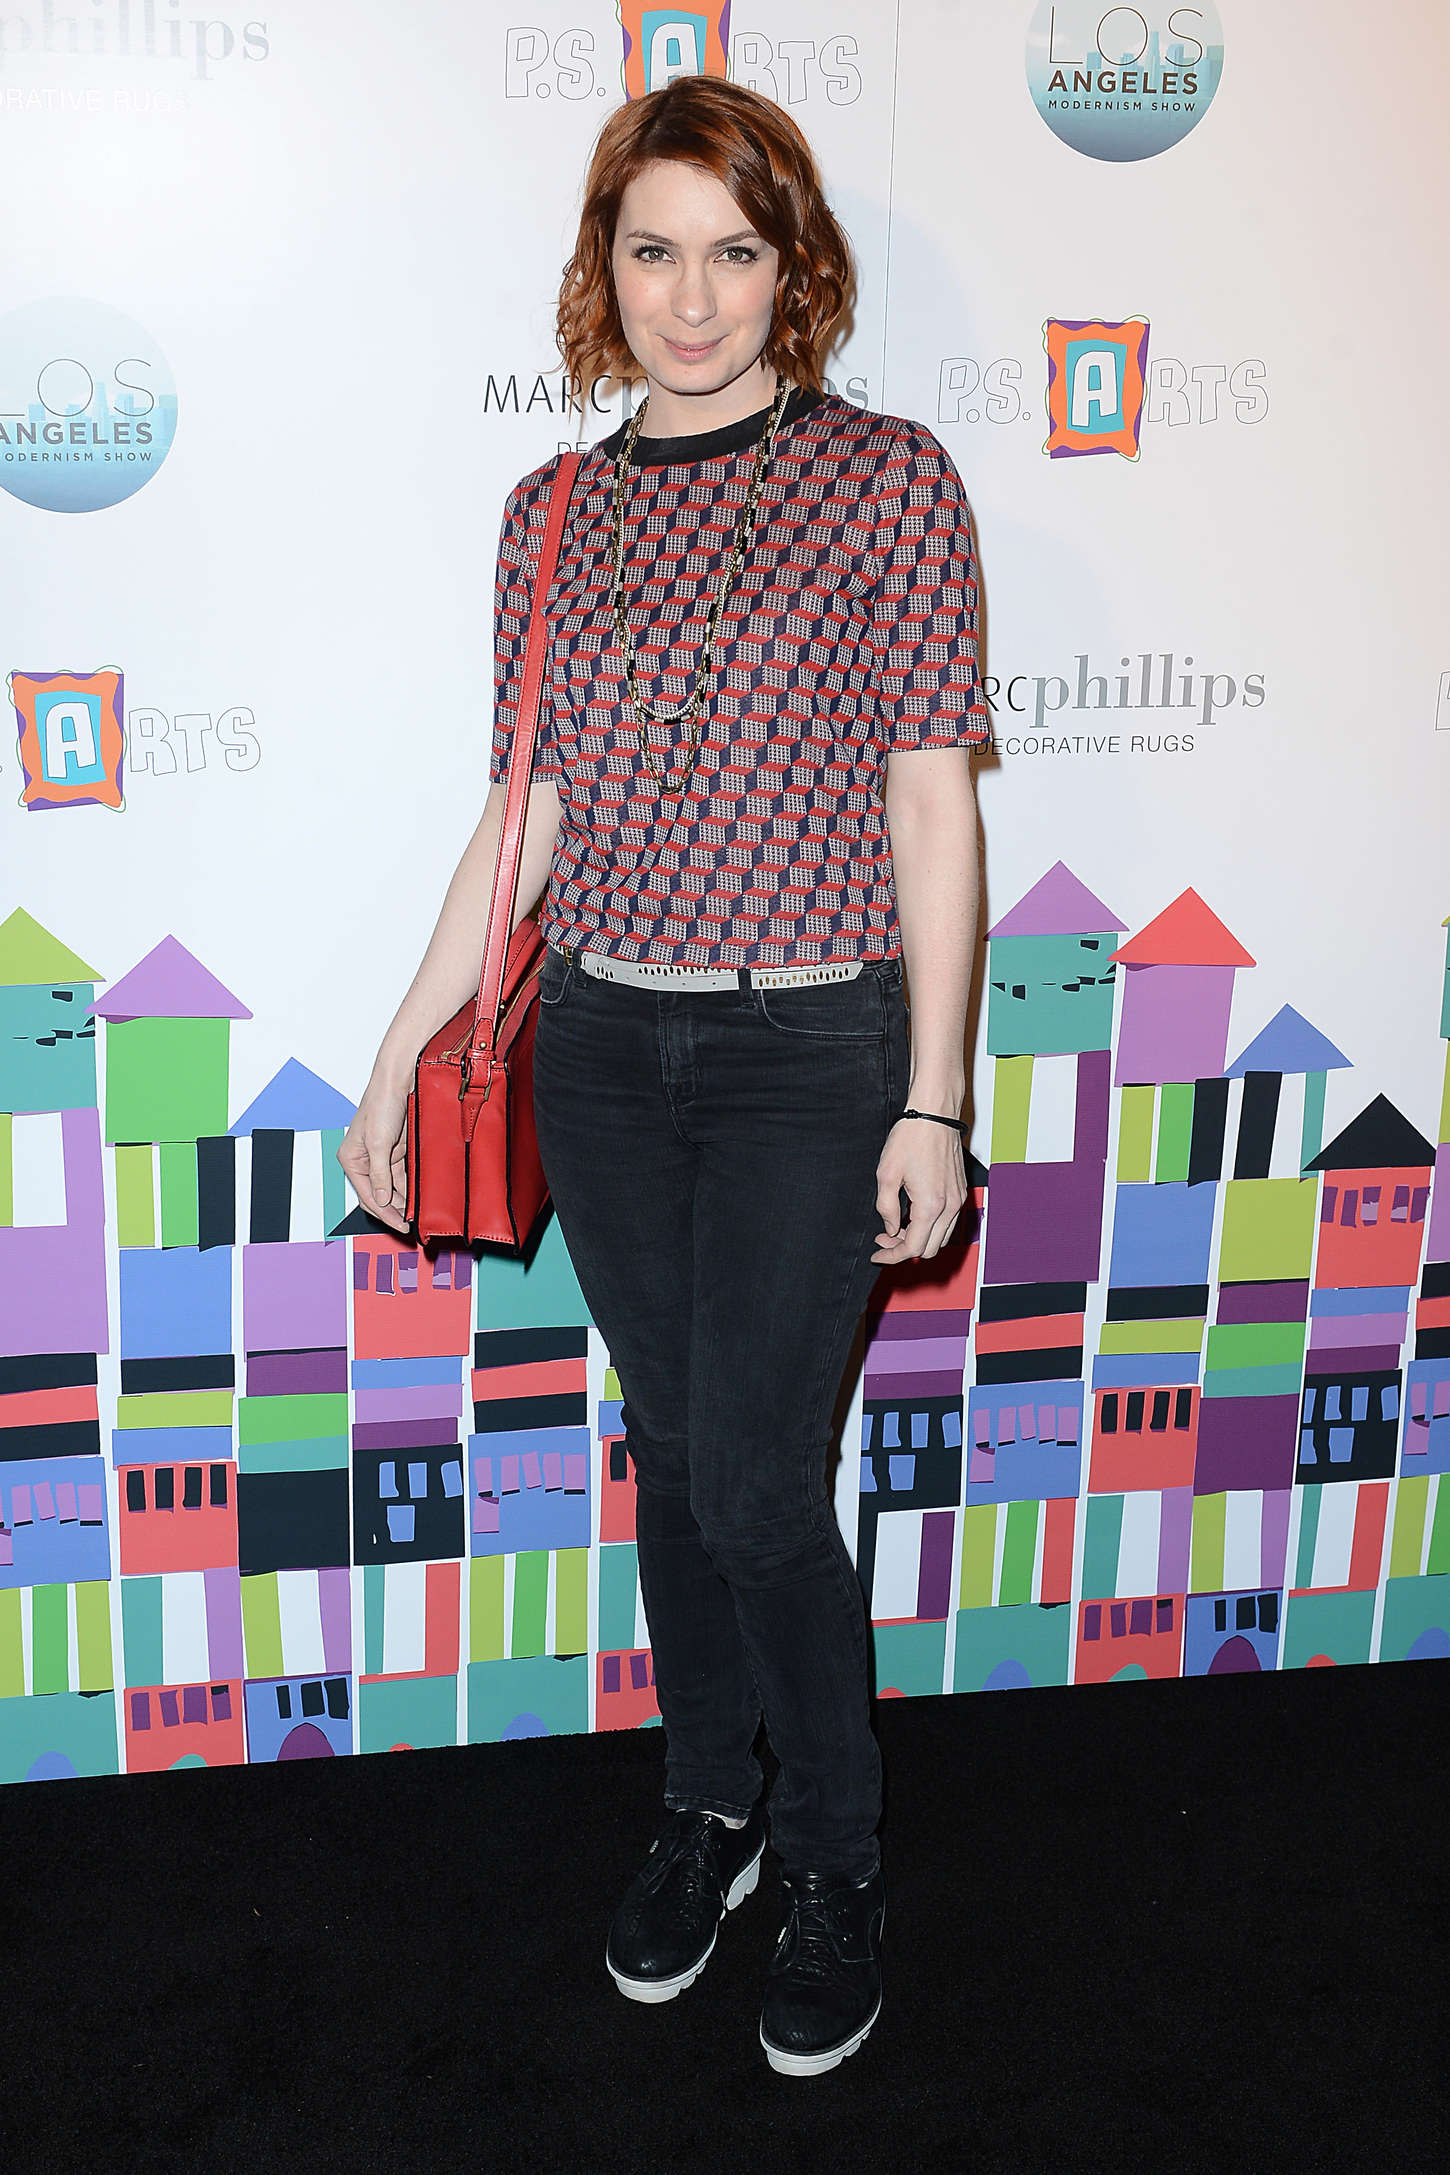 Felicia Day - PS ARTS Presents LA Modernism Opening Night Party in Culver City